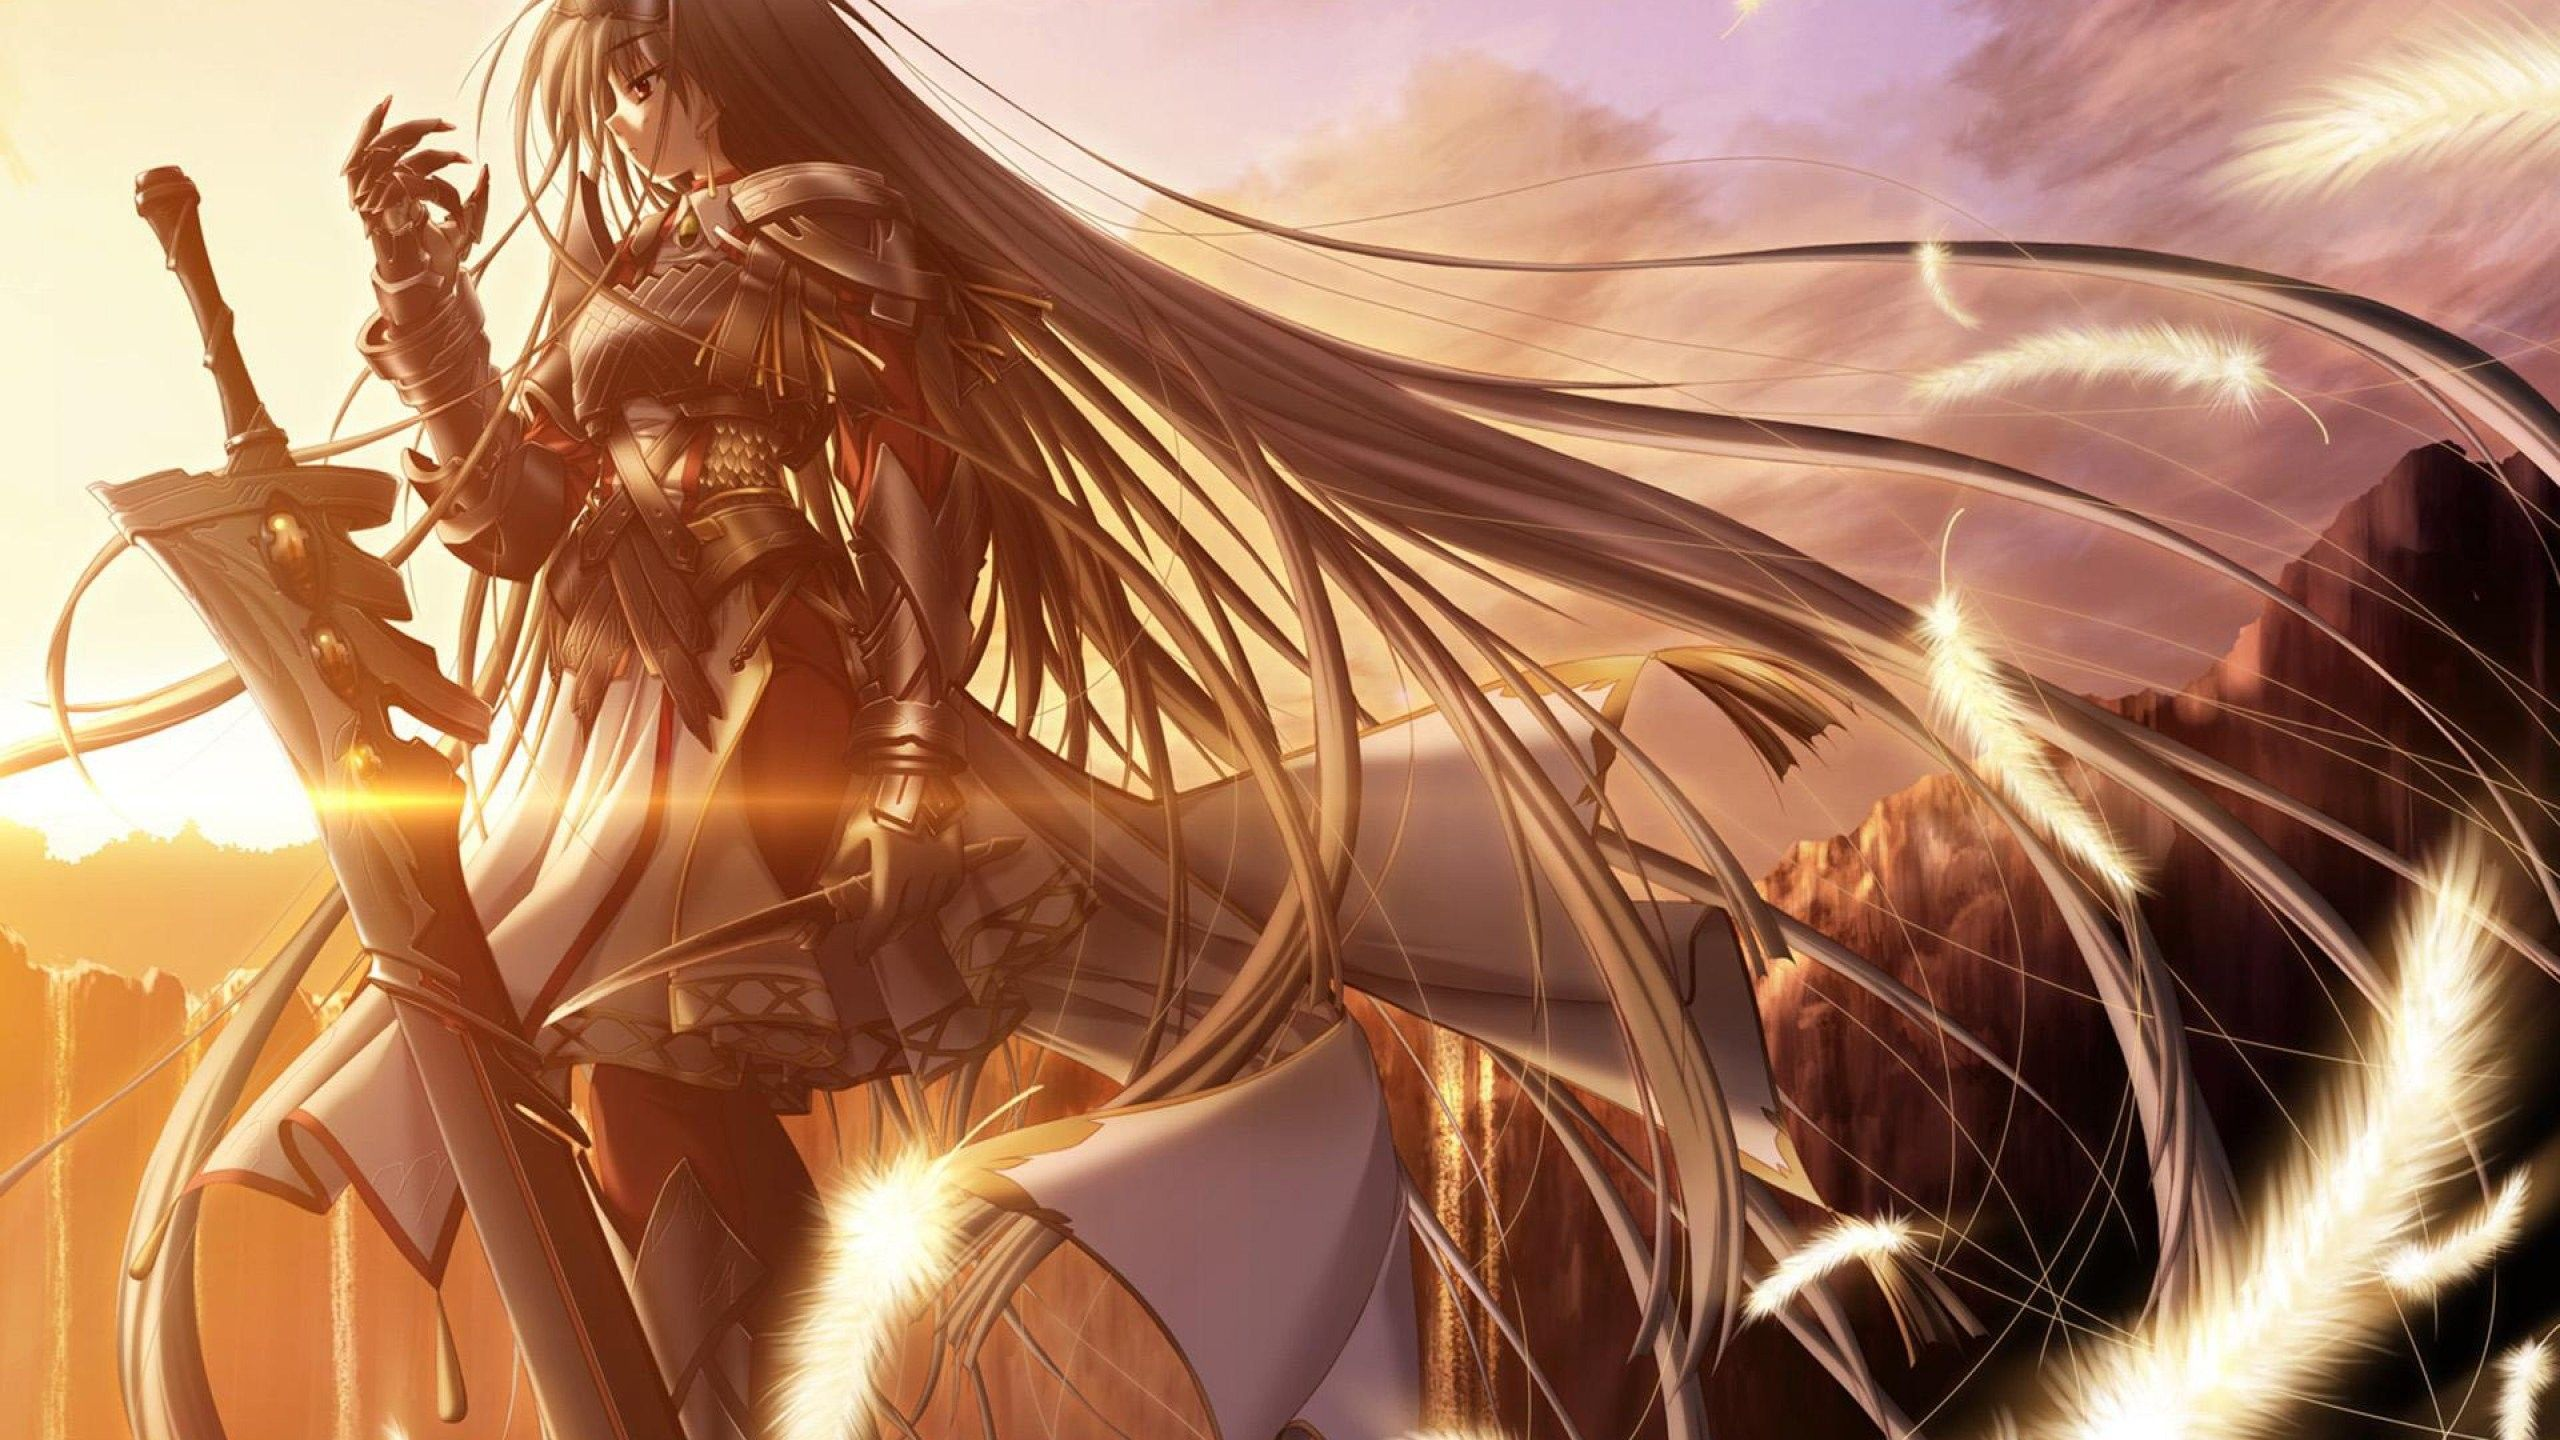 2560x1440 Fantasy Warrior Wallpapers 1920a 1080 Wallpapers Warrior